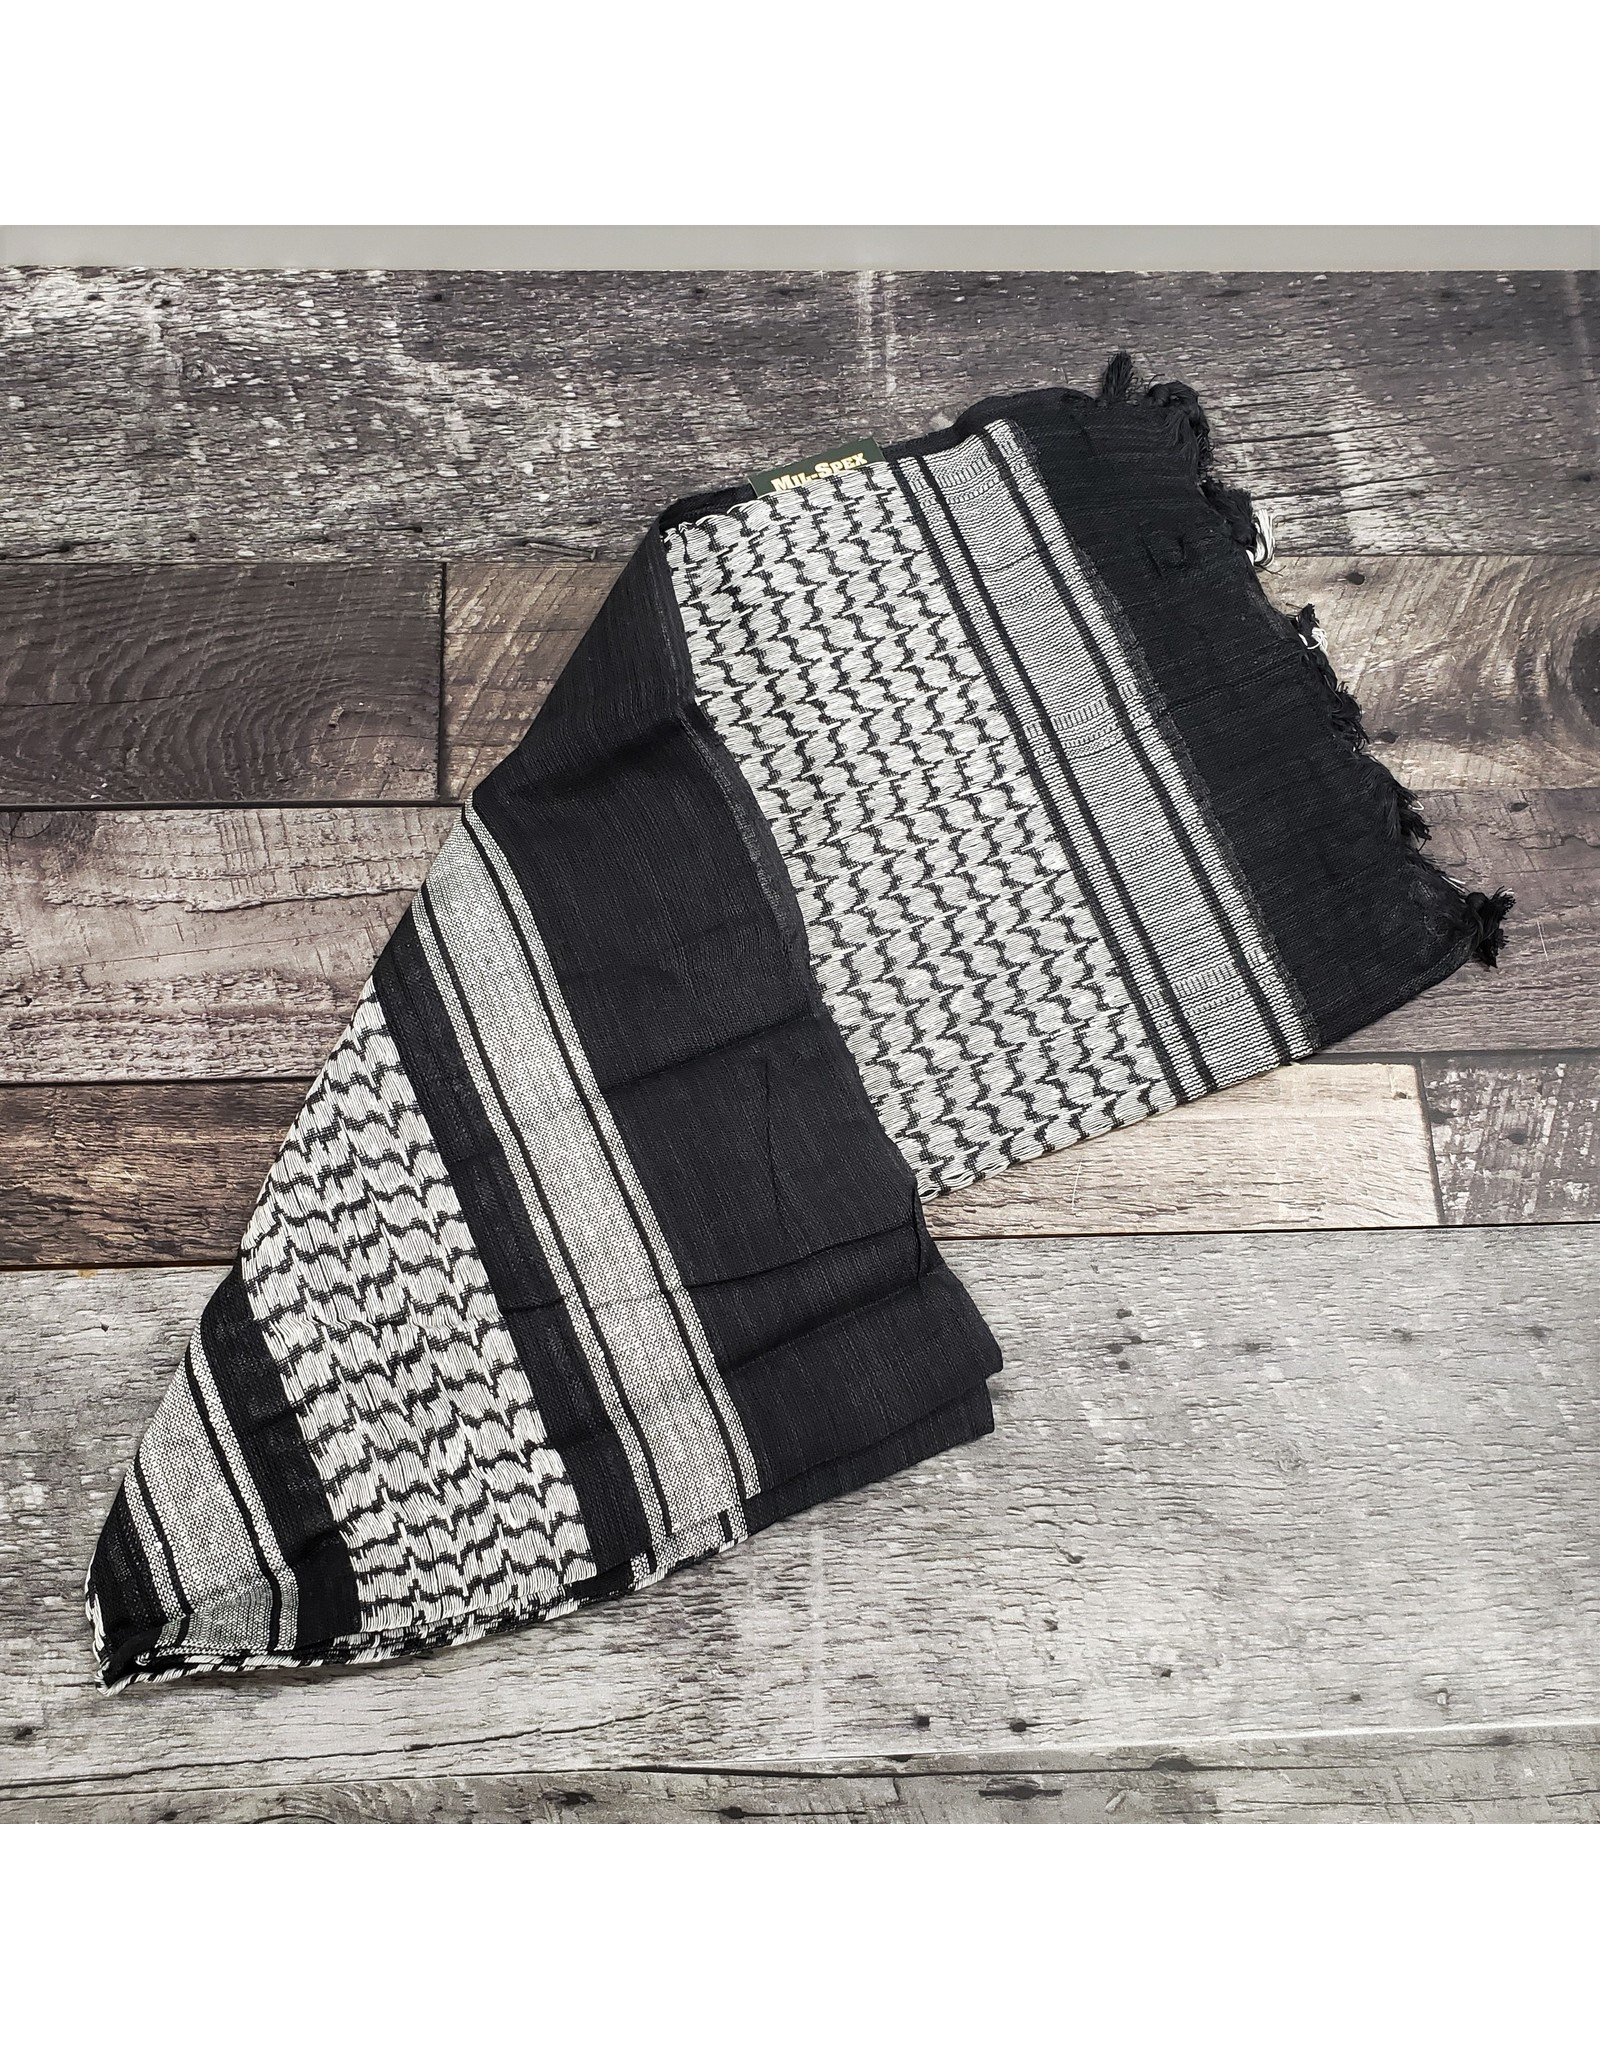 ROTHCO SHEMAGH PATTERN SCARVES